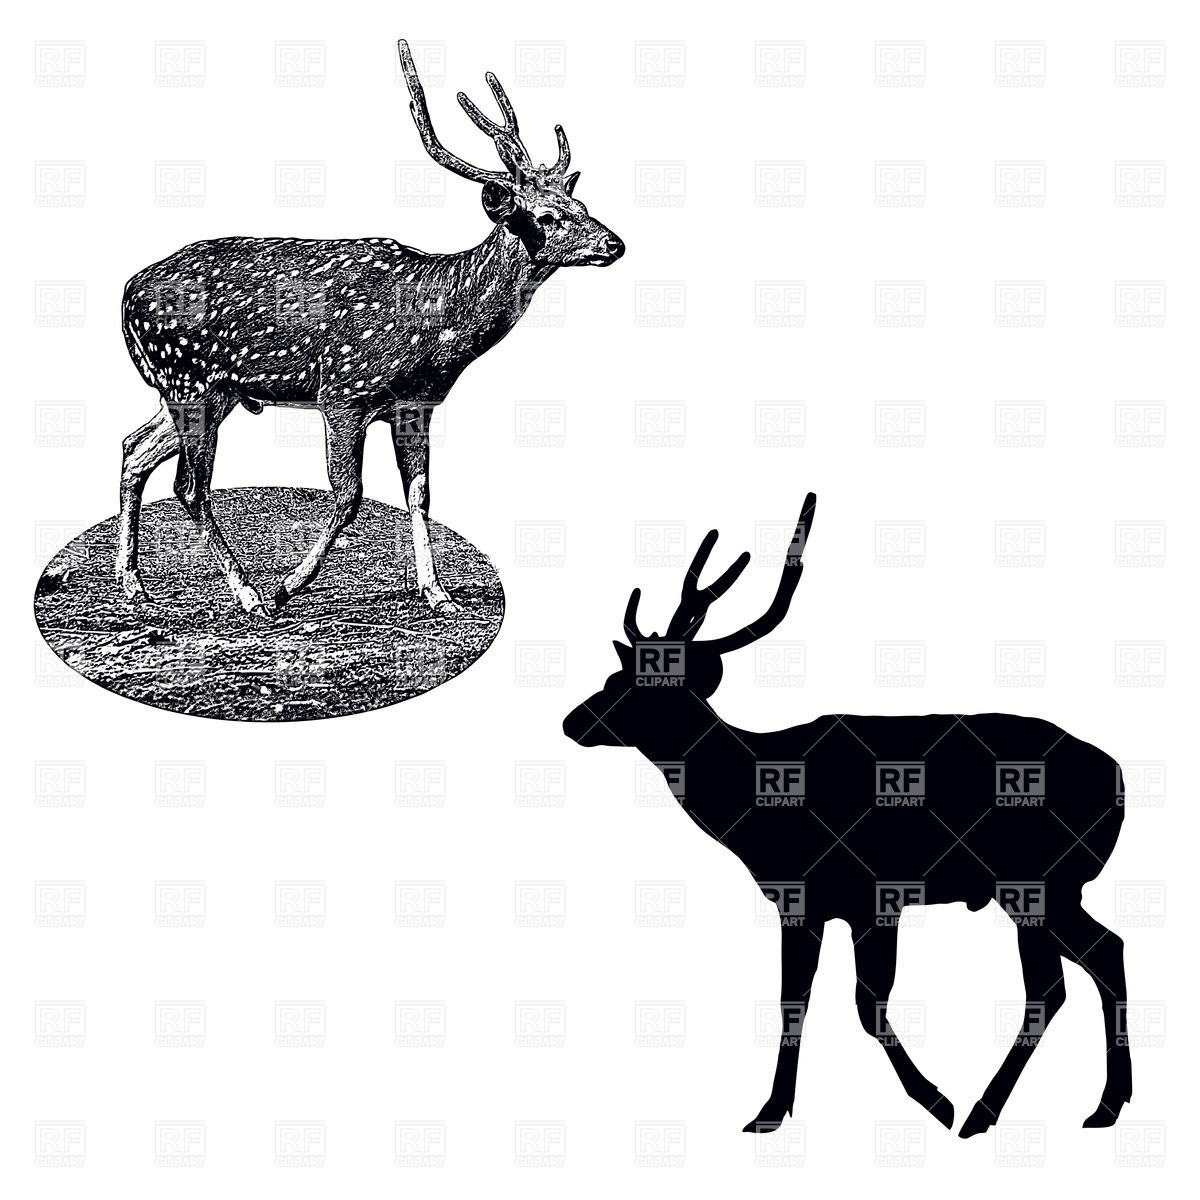 1200x1200 Silhouette And Shading Style Profile Of Male Of Spotted Deer